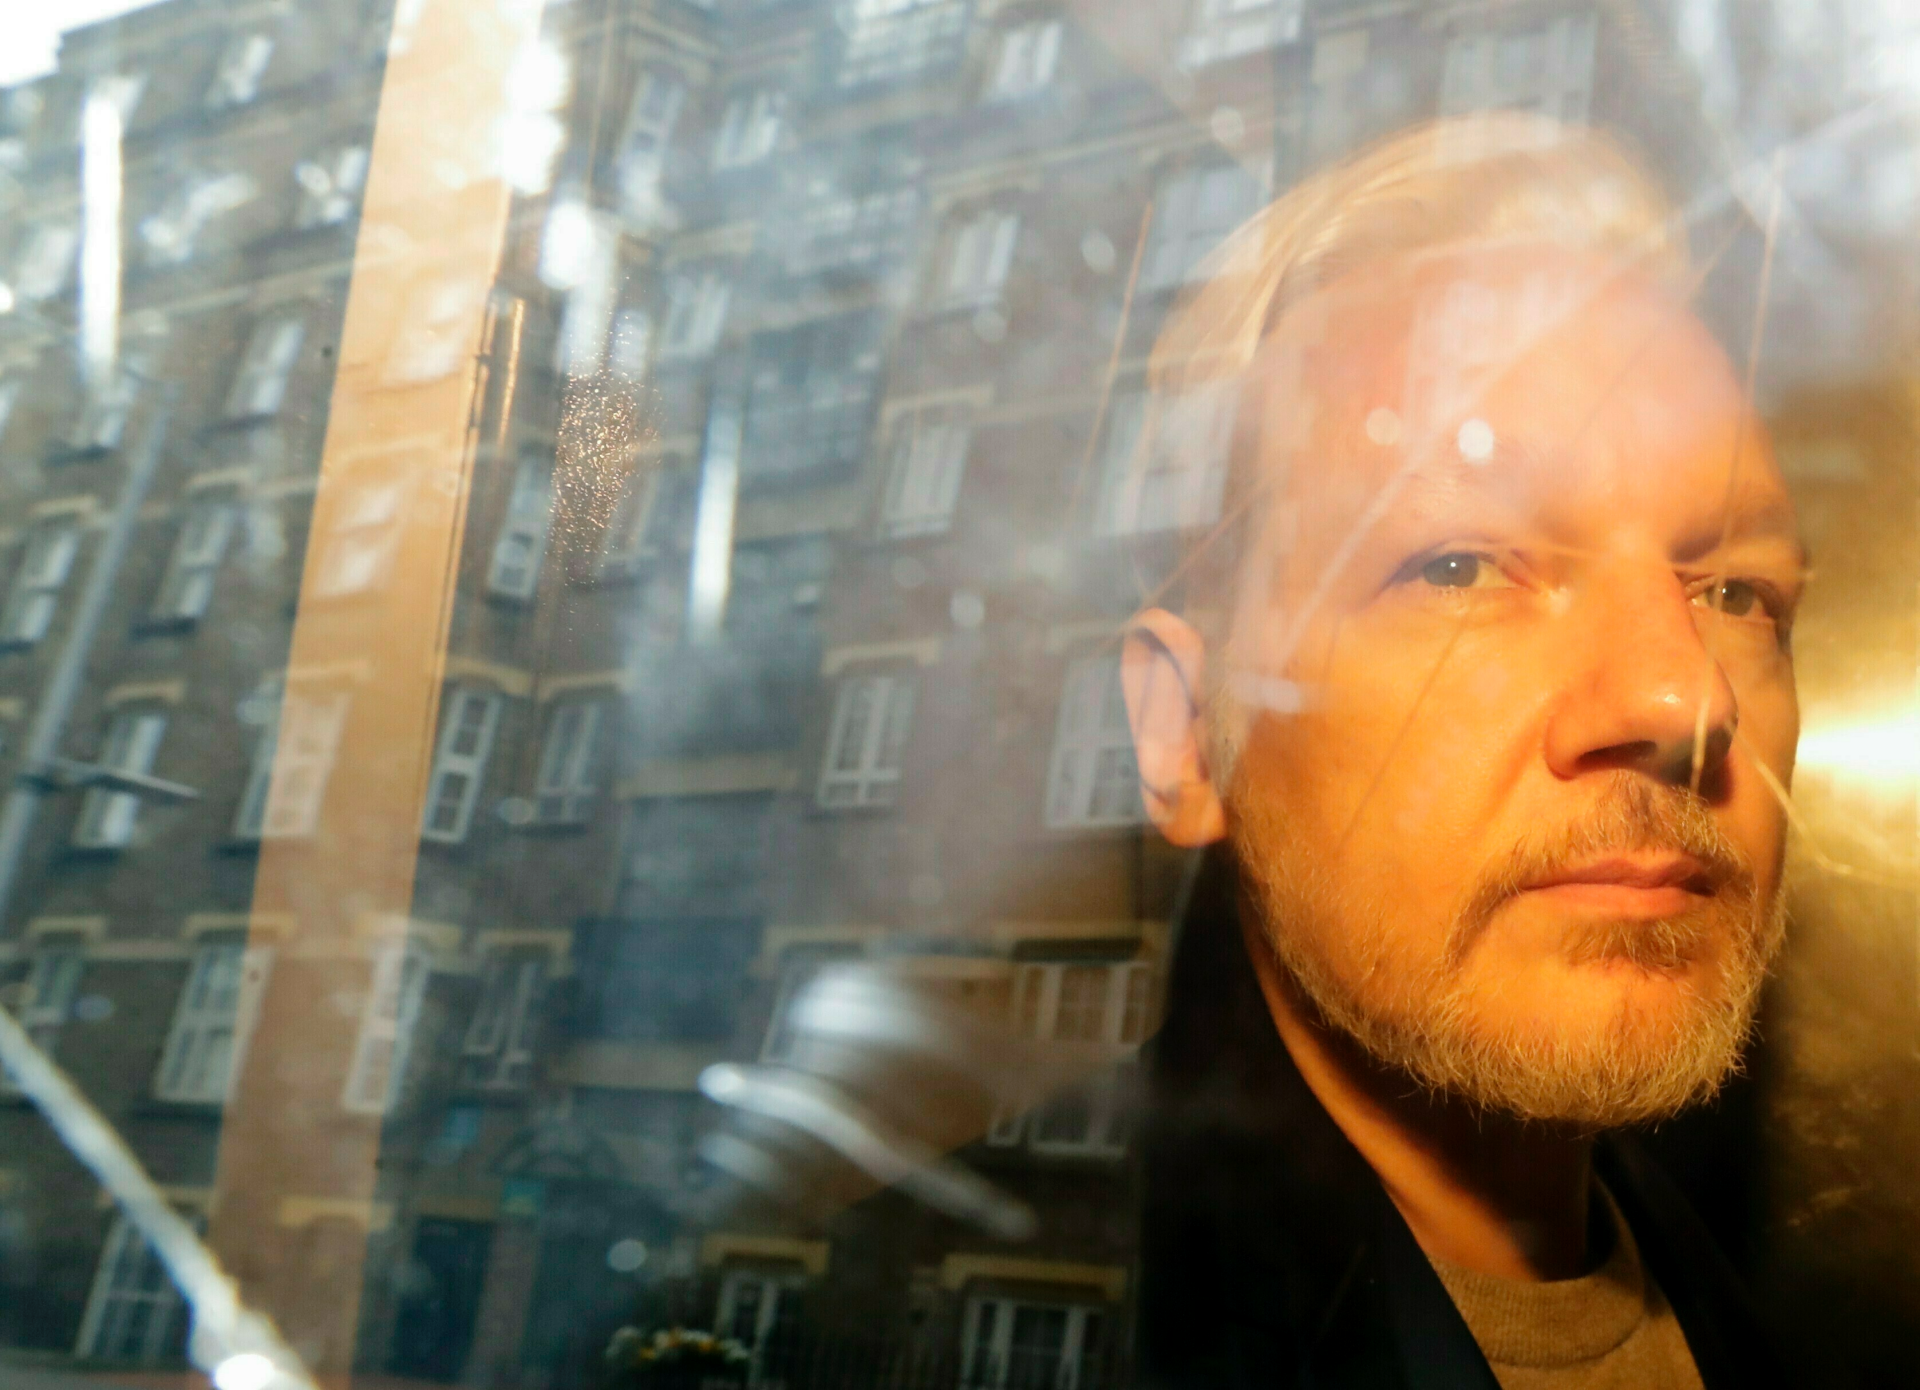 Major data breach puts all Ecuadorans - including Julian Assange - at risk of identity theft, security firm warns